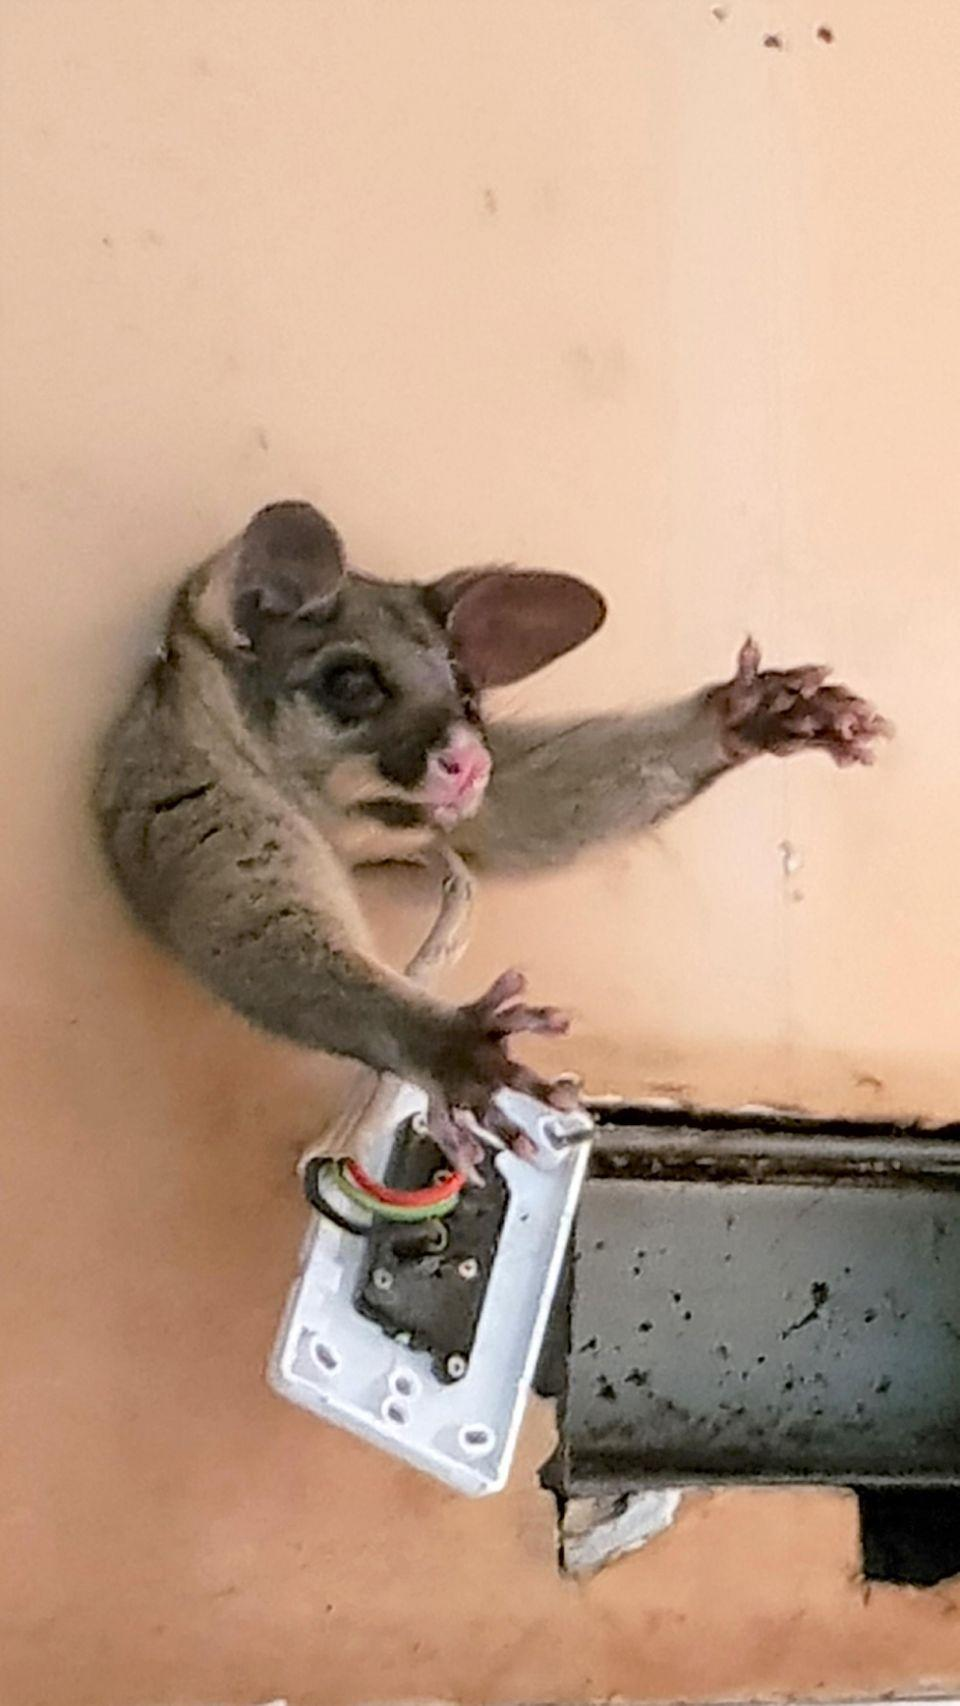 A Melbourne mum couldn't believe it when she walked into her kitchen and found a possum stuck in the wall. Photo: Caters News